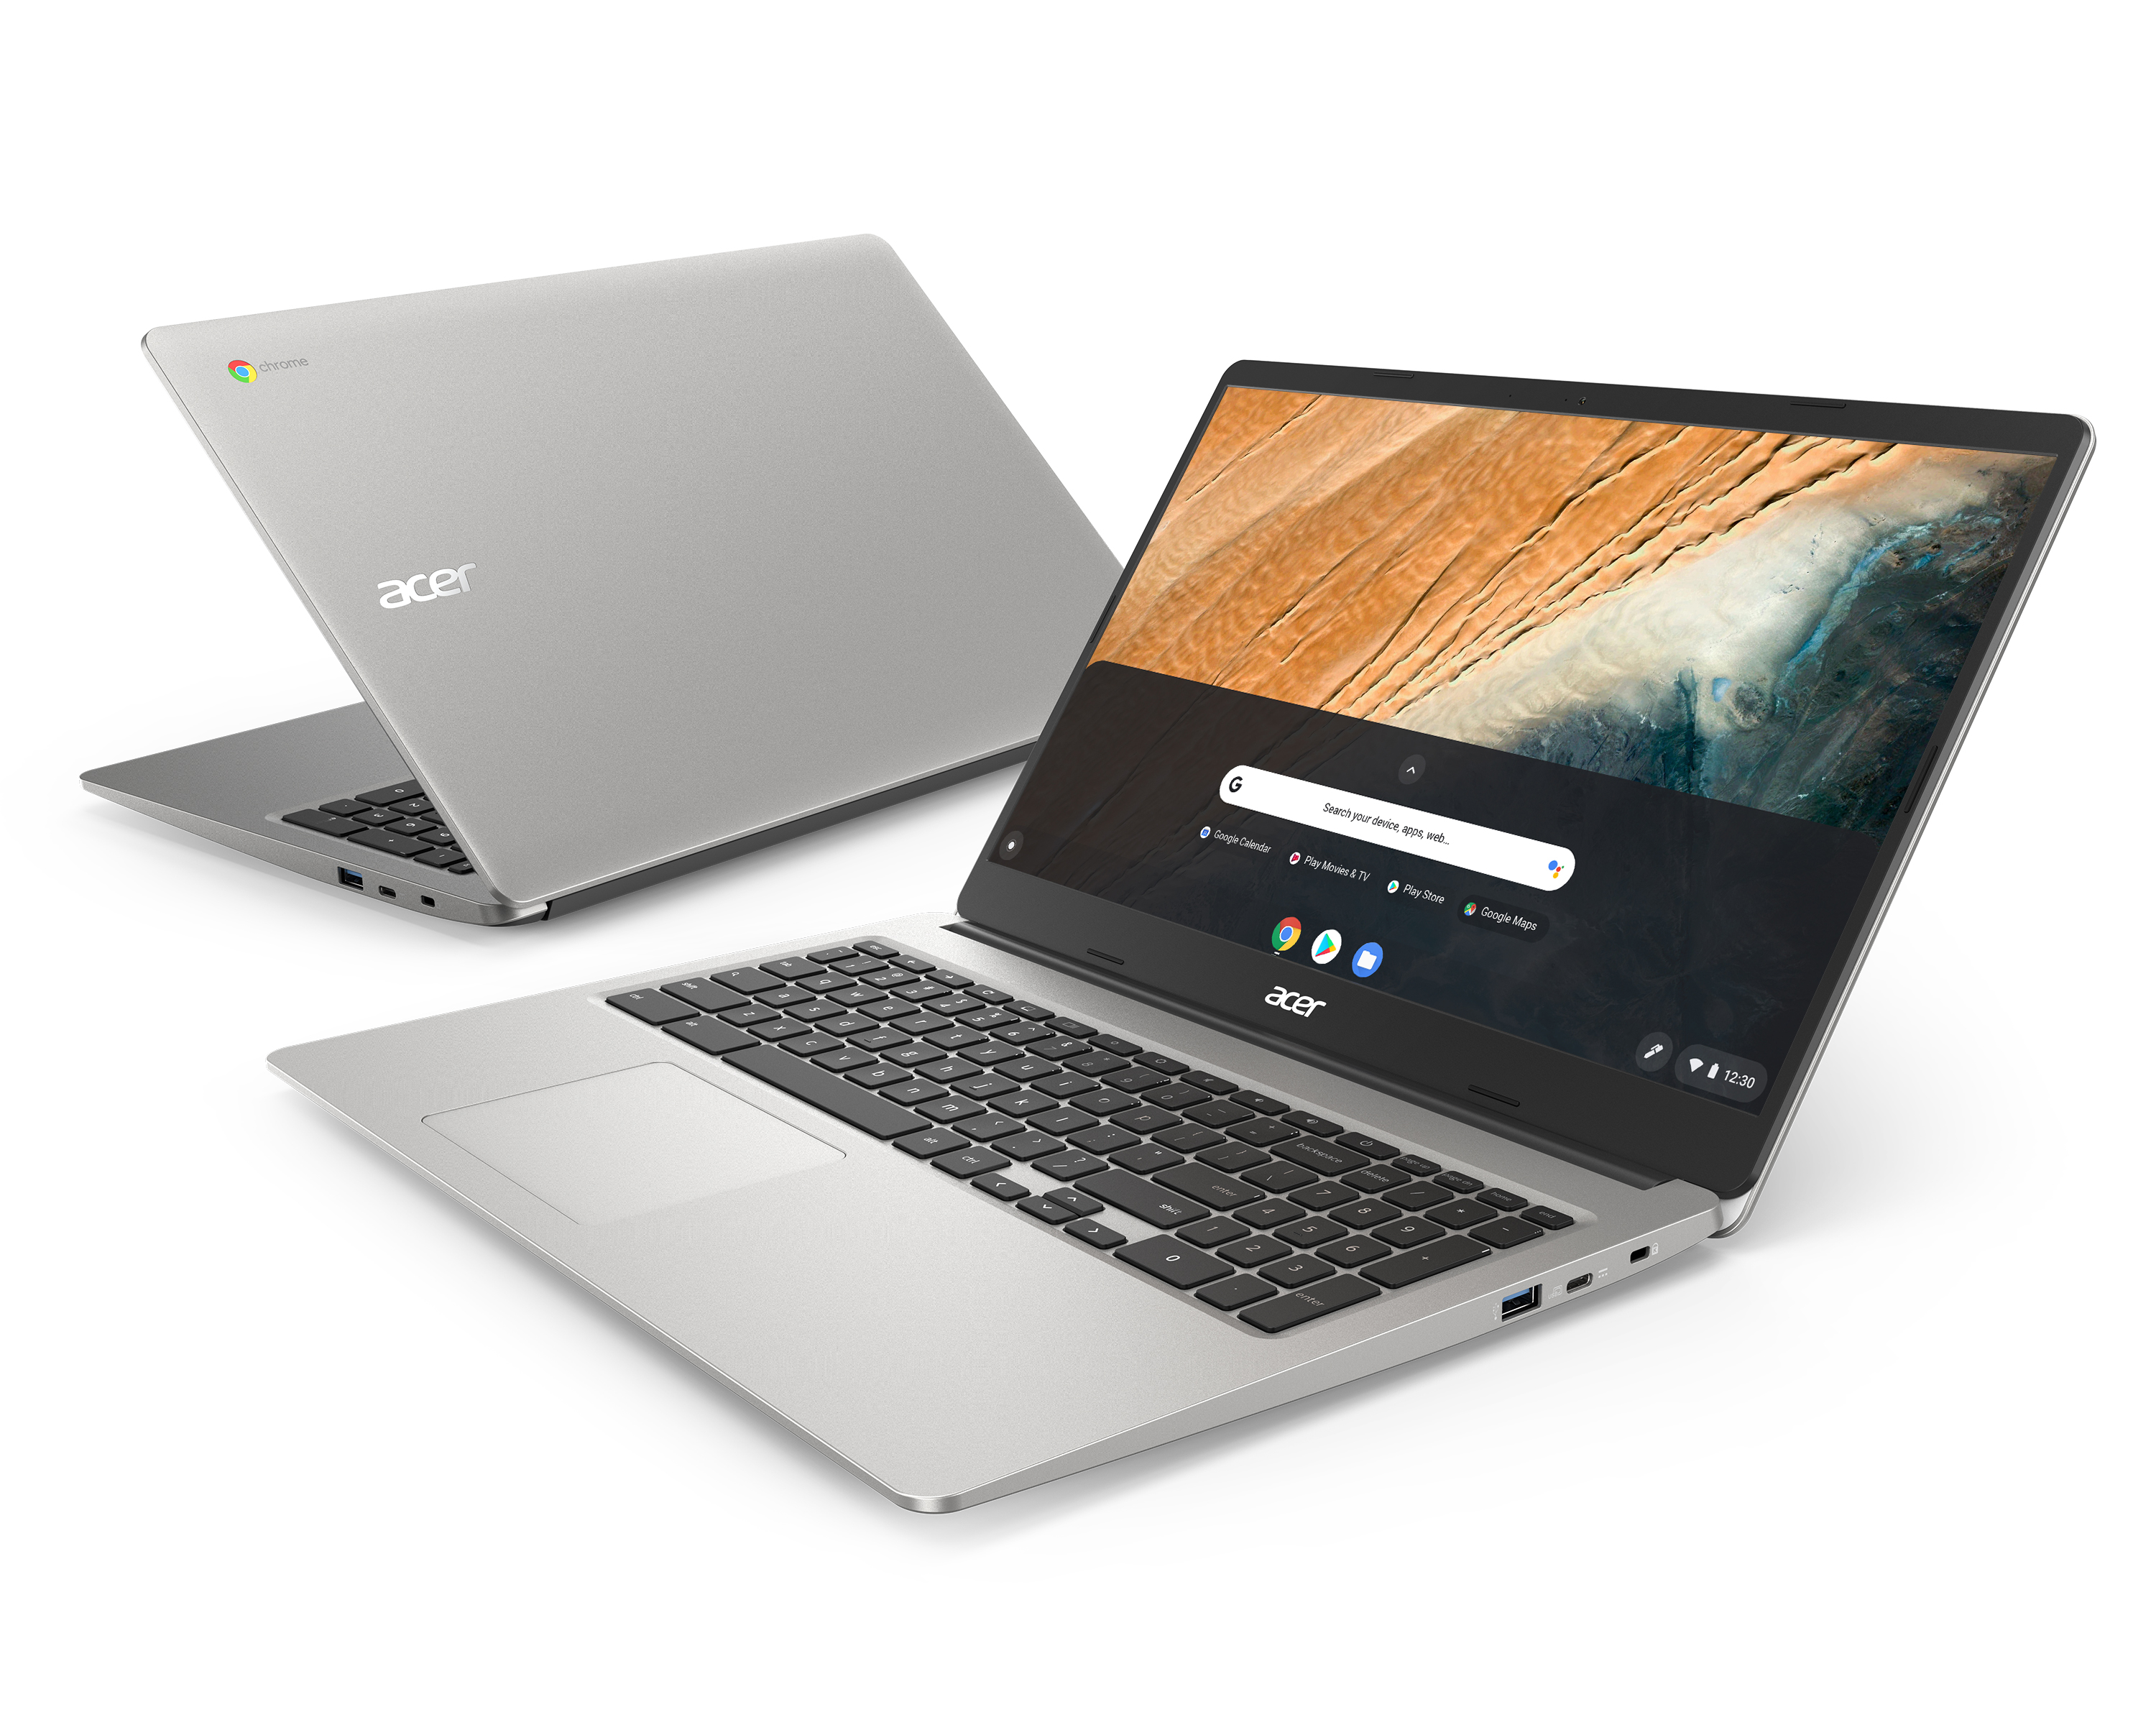 Acer launches a slew of new Chromebooks with entry-level